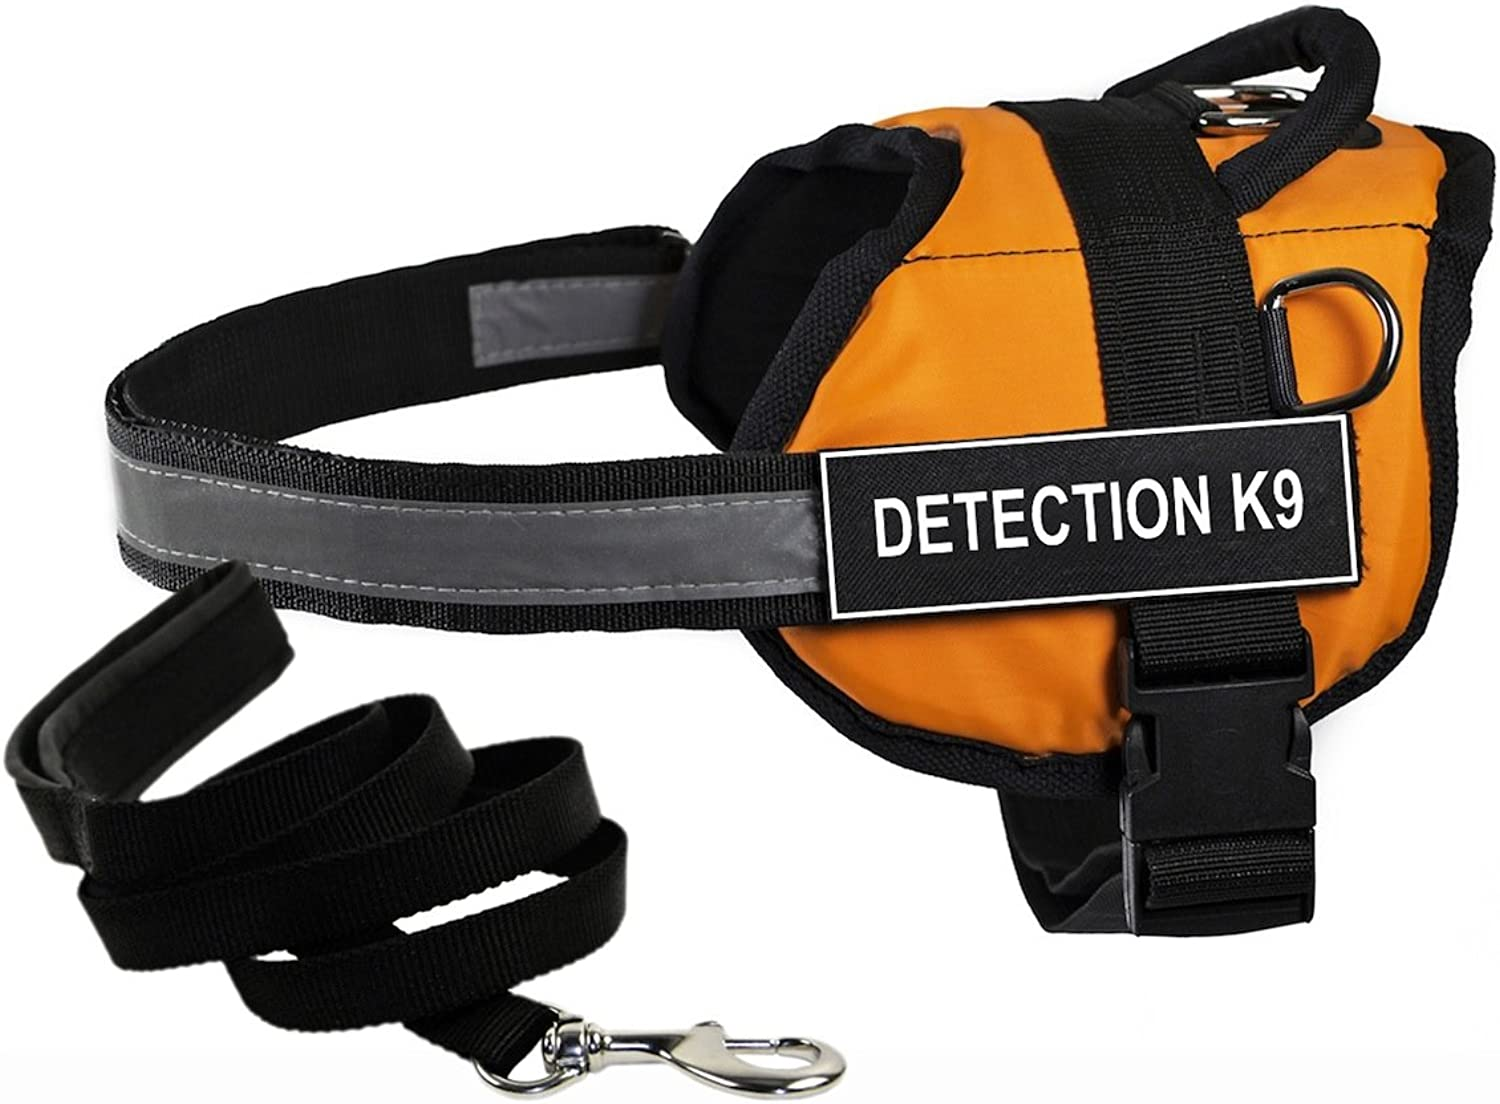 Dean & Tyler's DT Works orange DETECTION K9 Harness with, Small, and Black 6 ft Padded Puppy Leash.